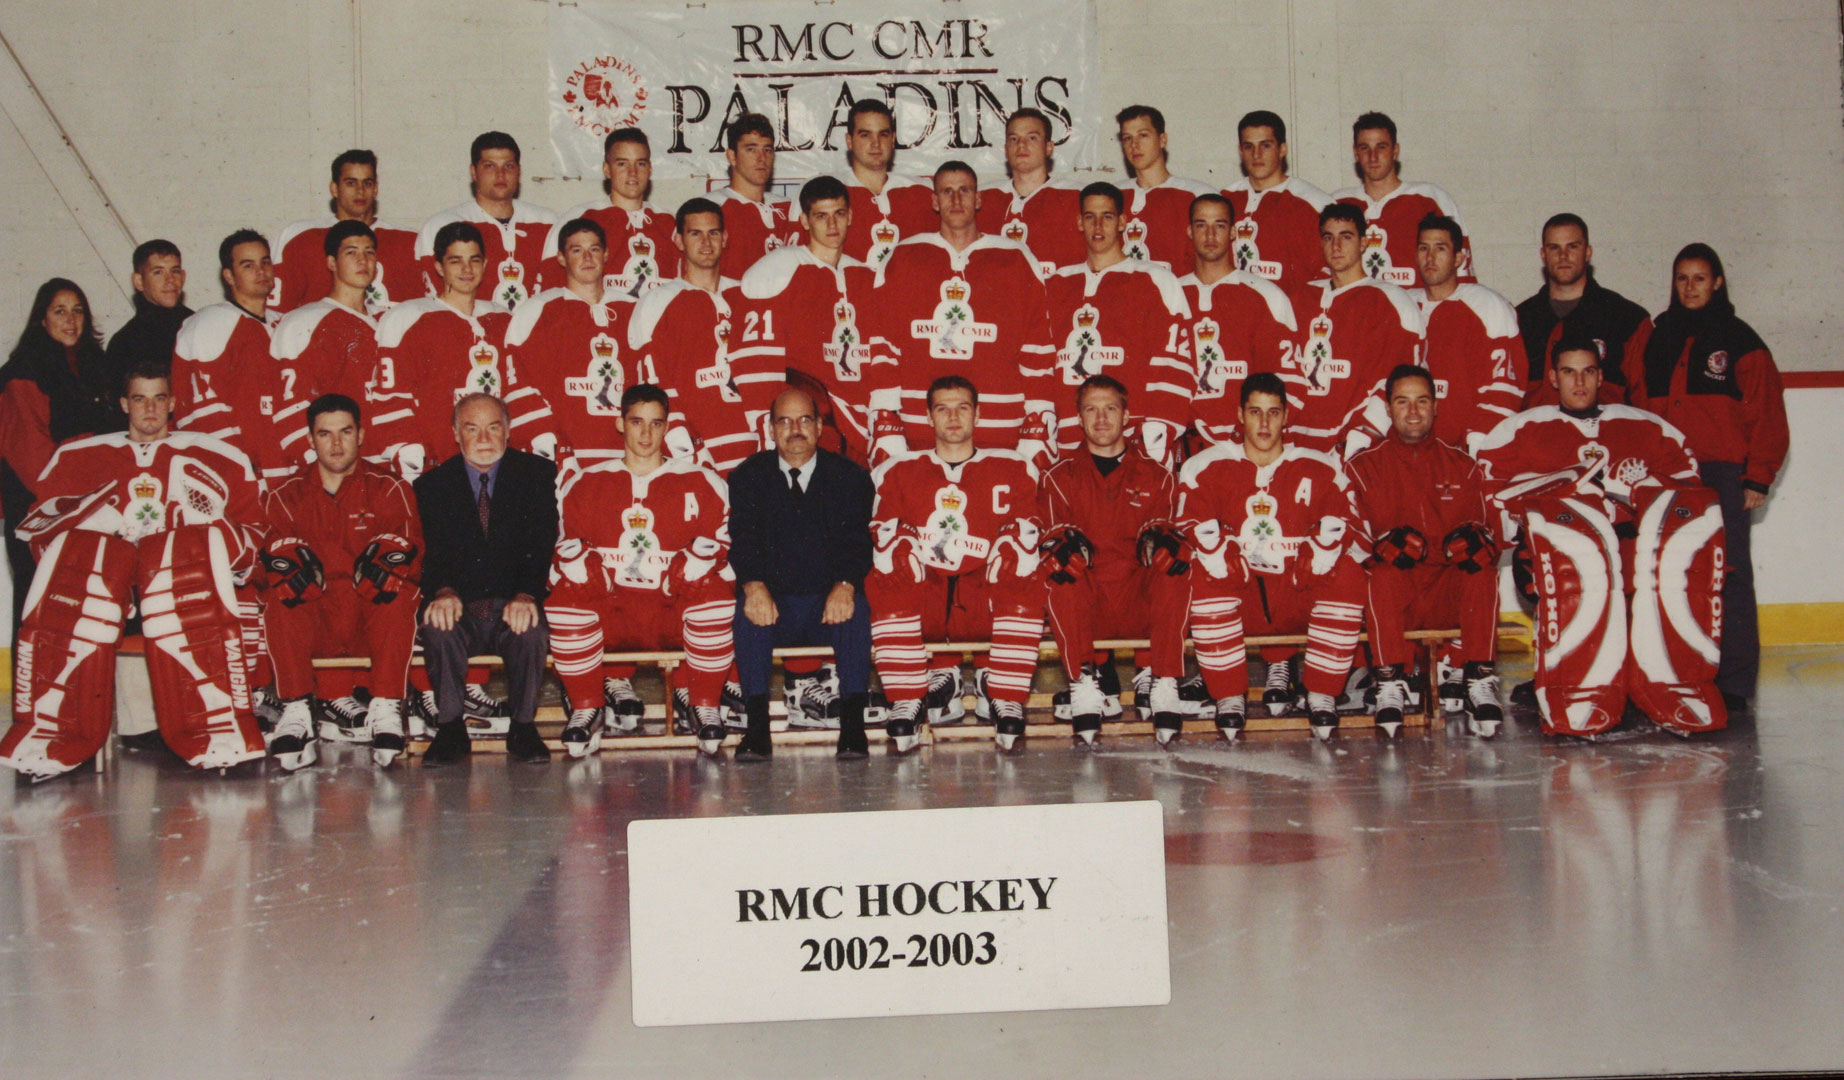 RMC Hockey 2002-03 Picture